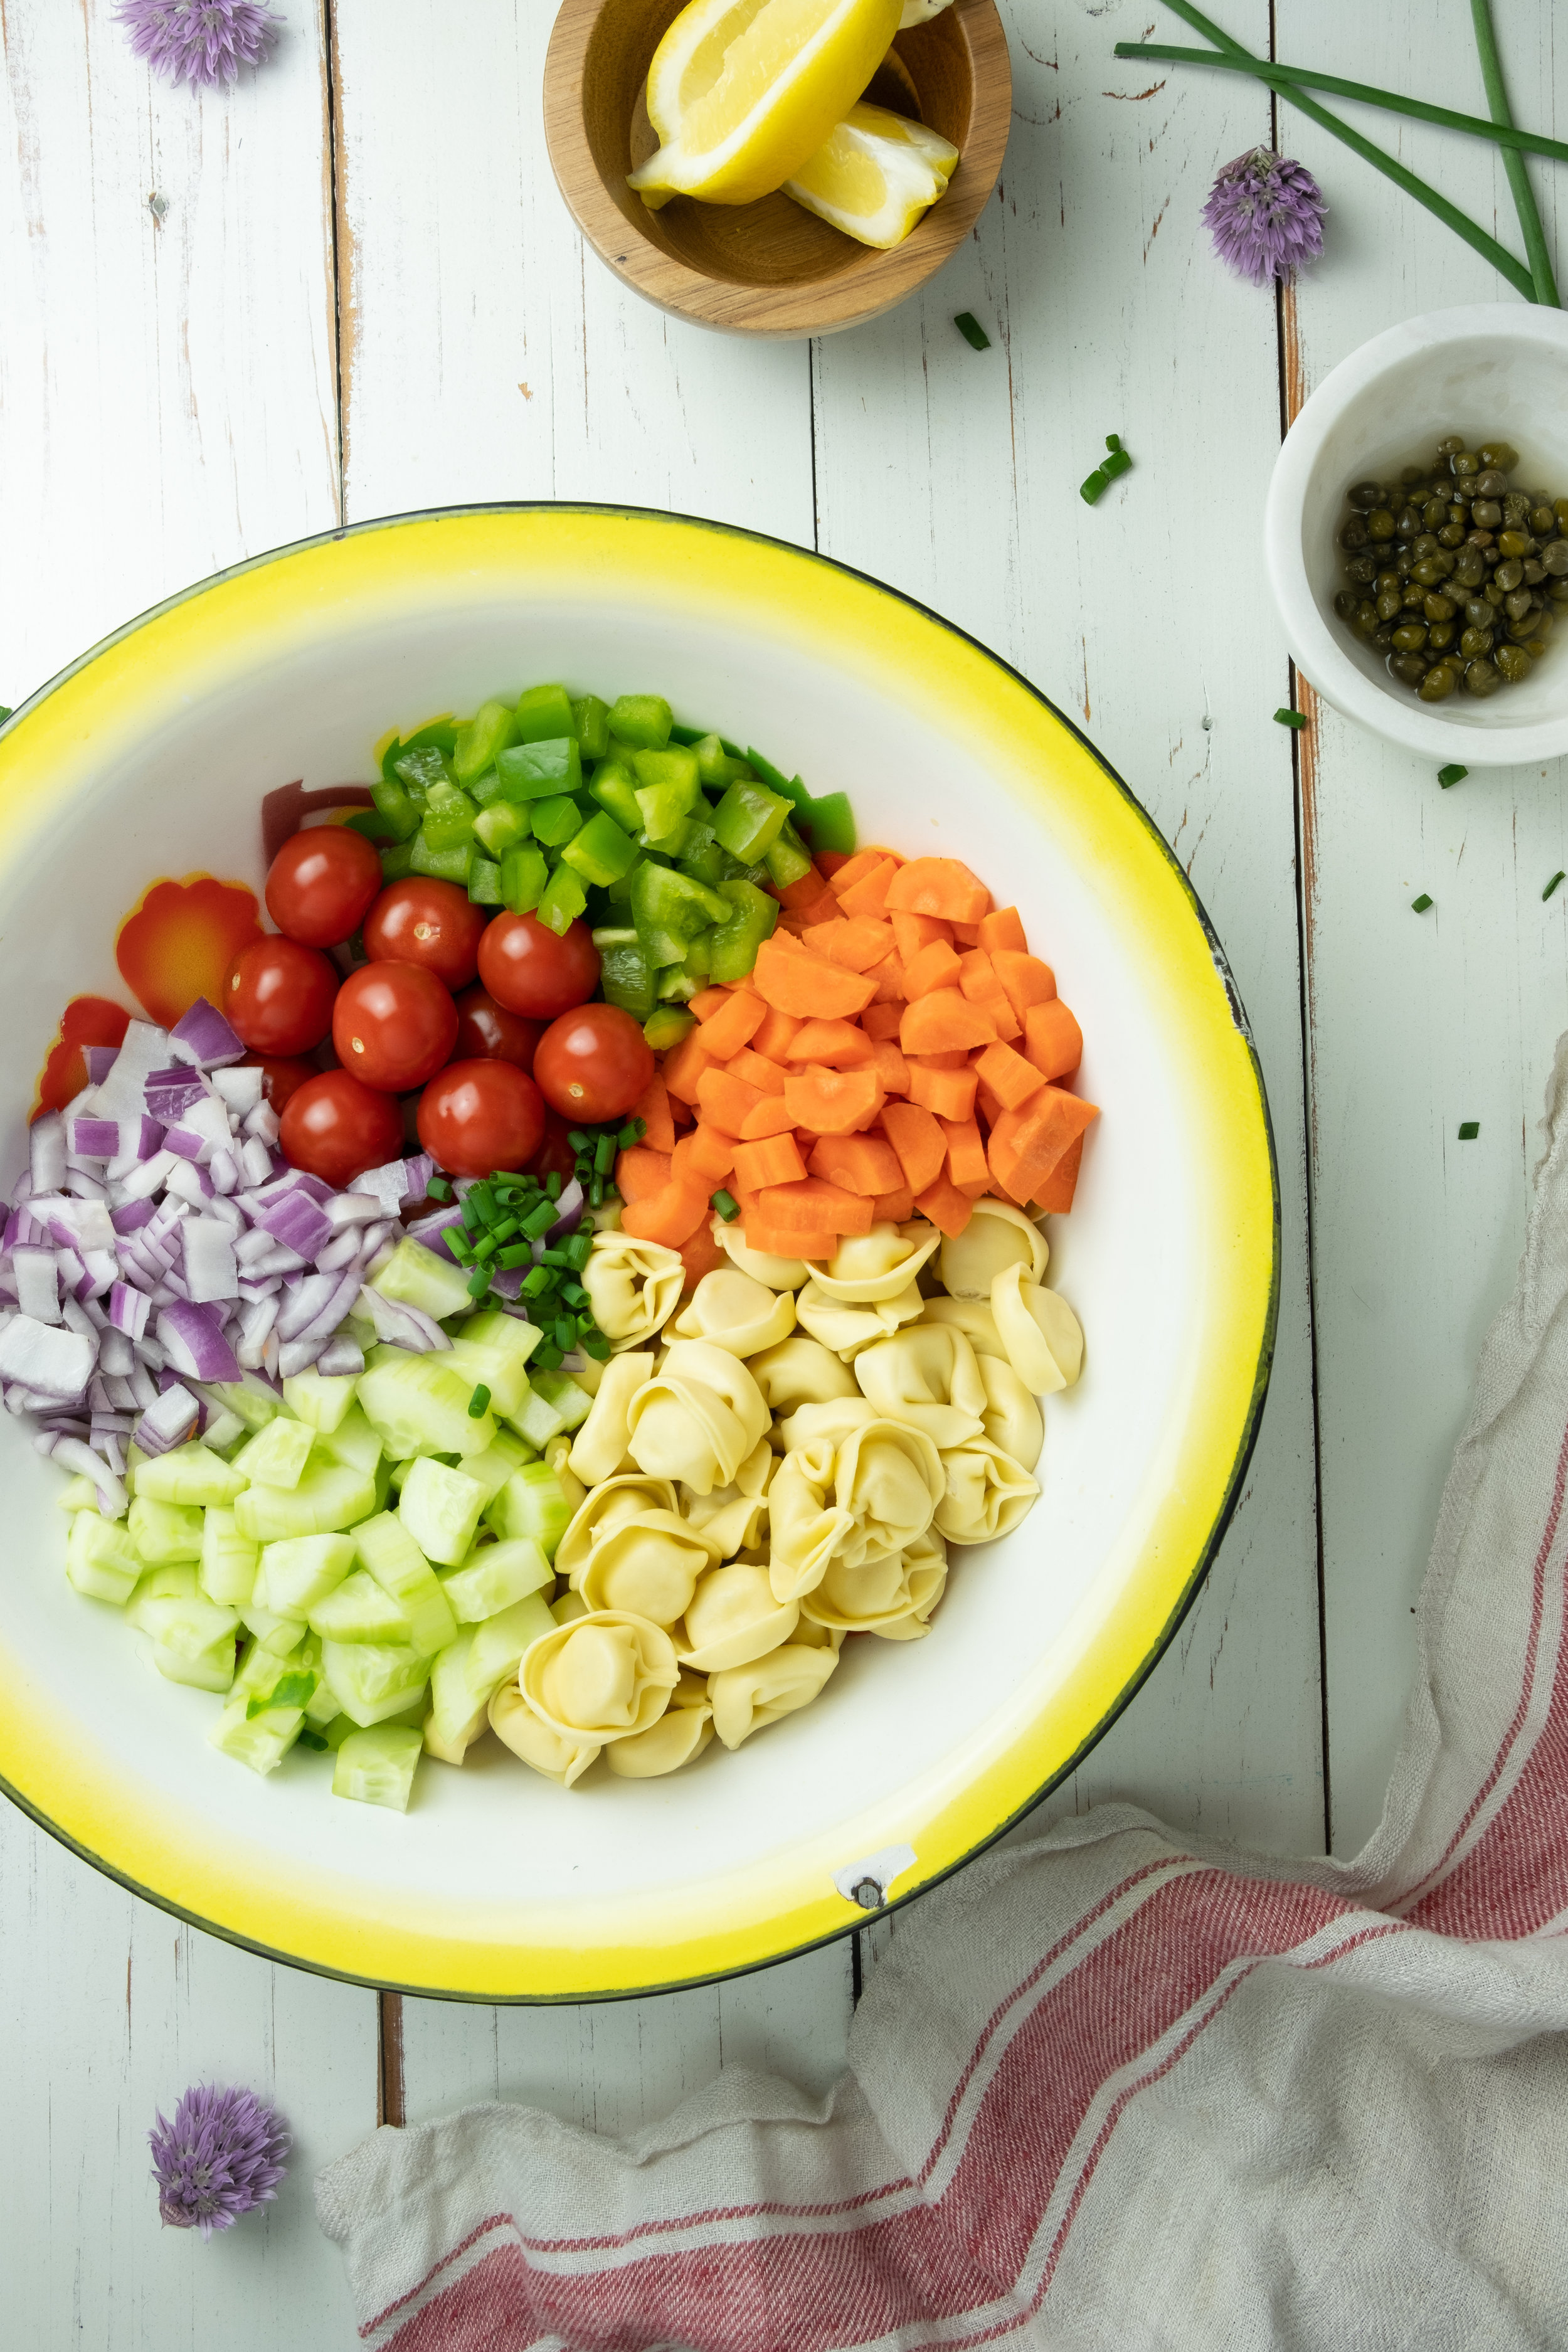 ingredients for vegetable tortellini salad in a big bowl including carrots, tomatoes, and onions